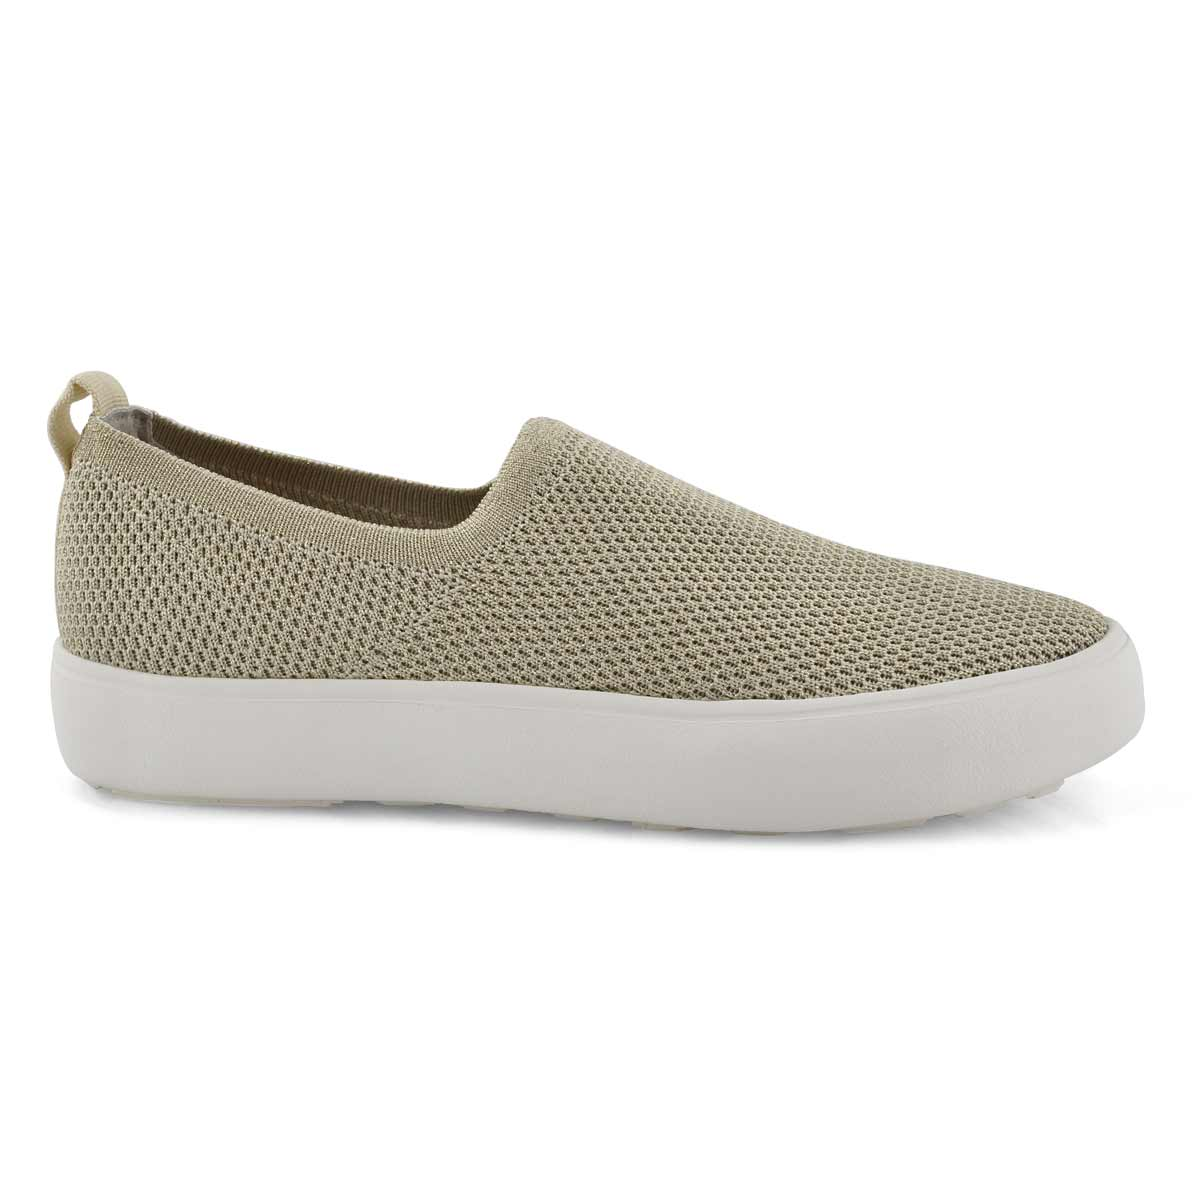 Lds Hint gold casual slip on